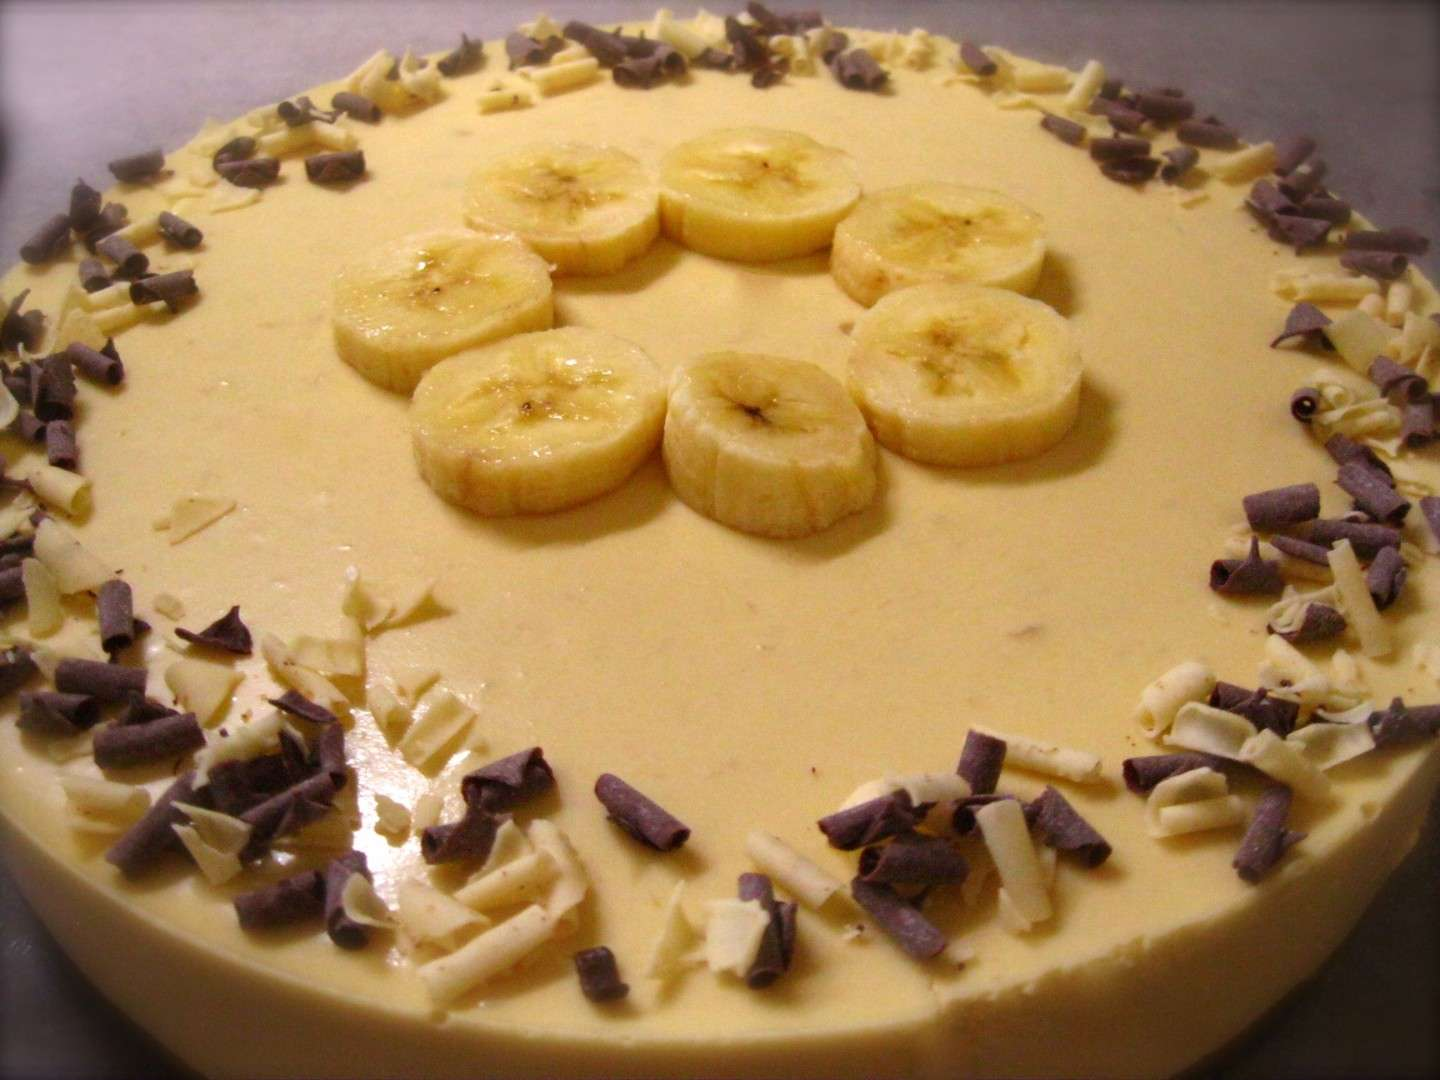 Cheesecake banana